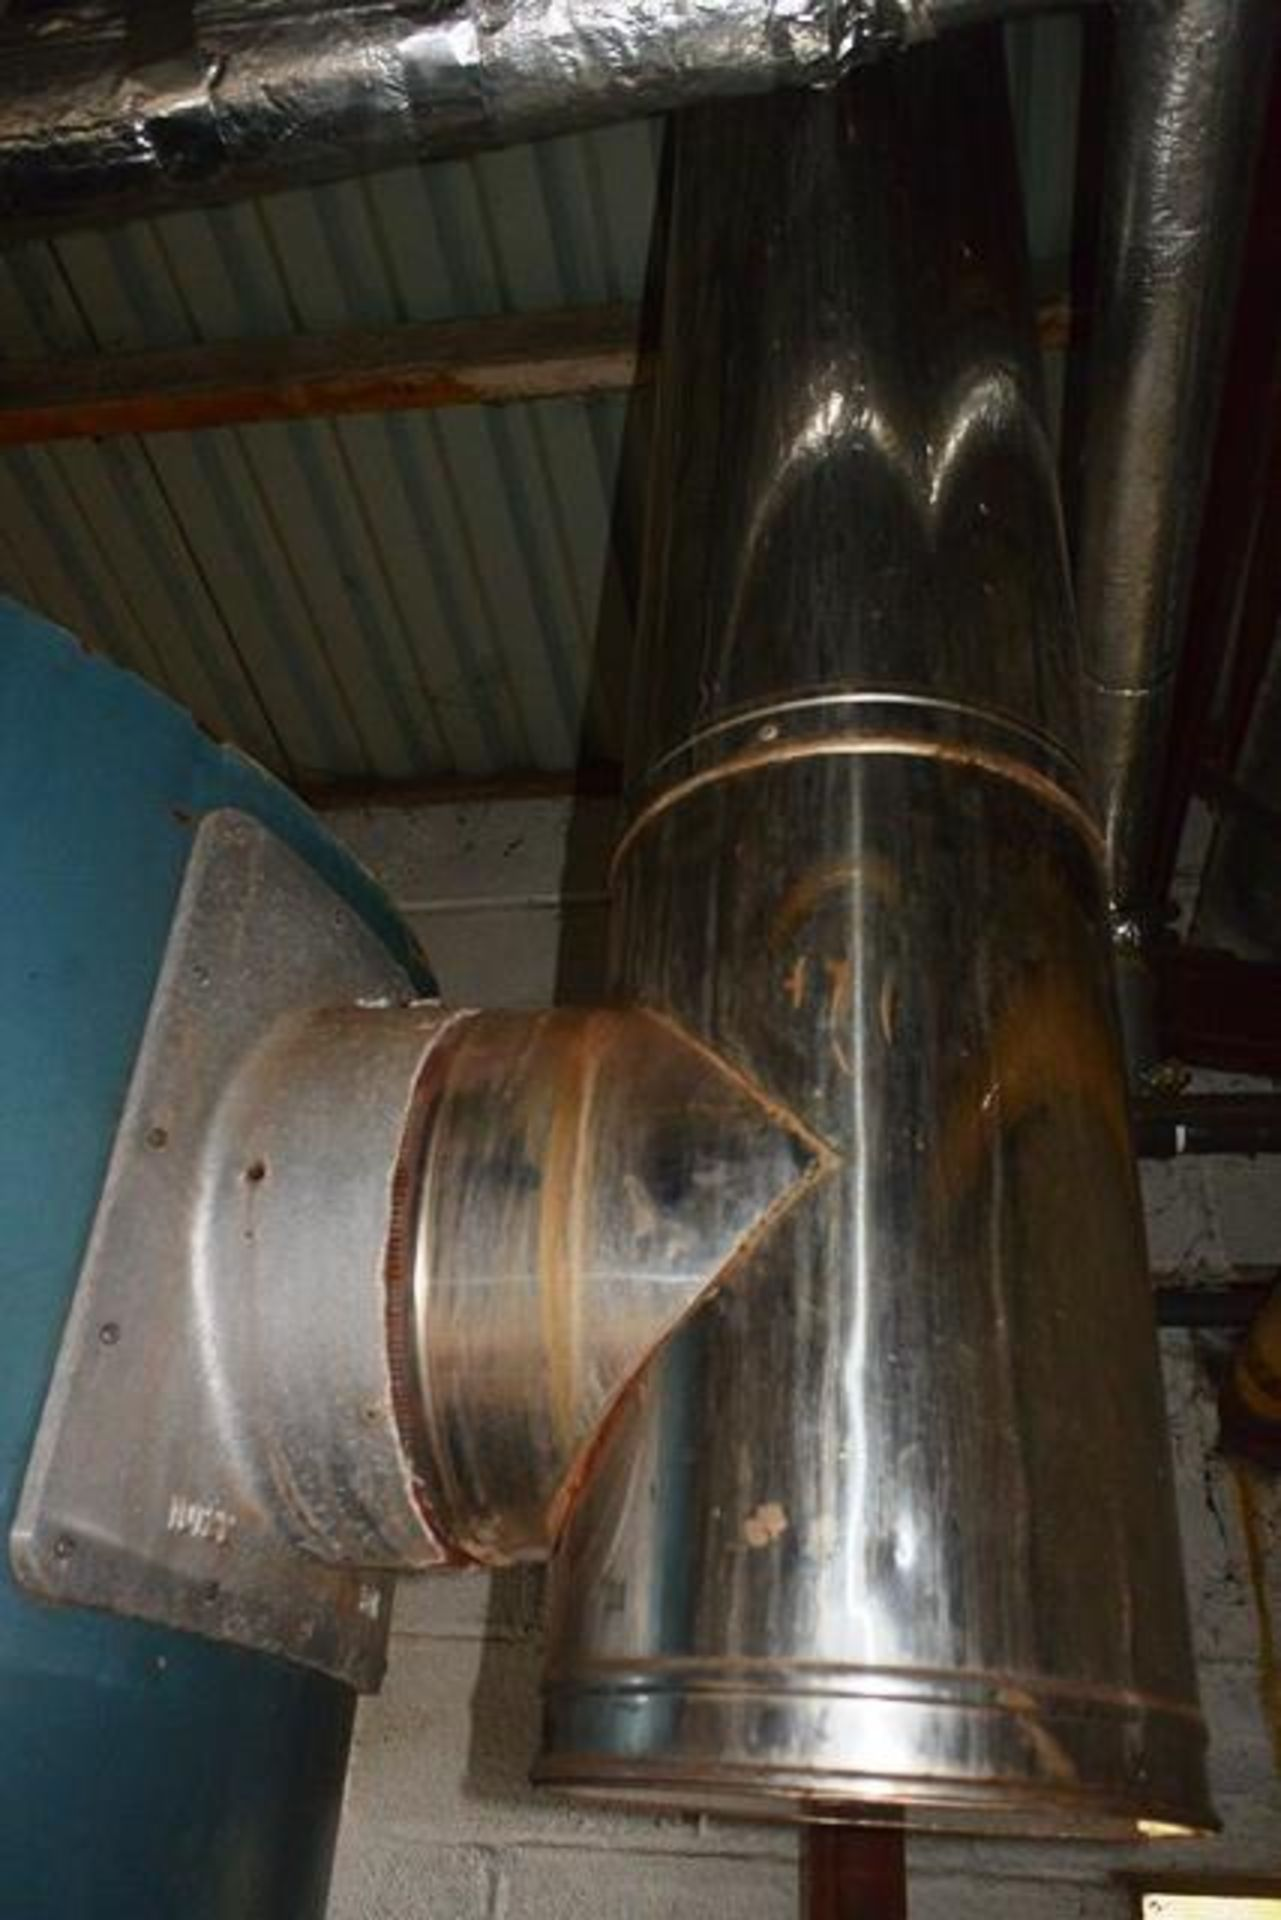 Fulton steam boiler, model 30E, serial no. B7026, design pressure 895 N/mm², test pressure /34N/ - Image 9 of 11